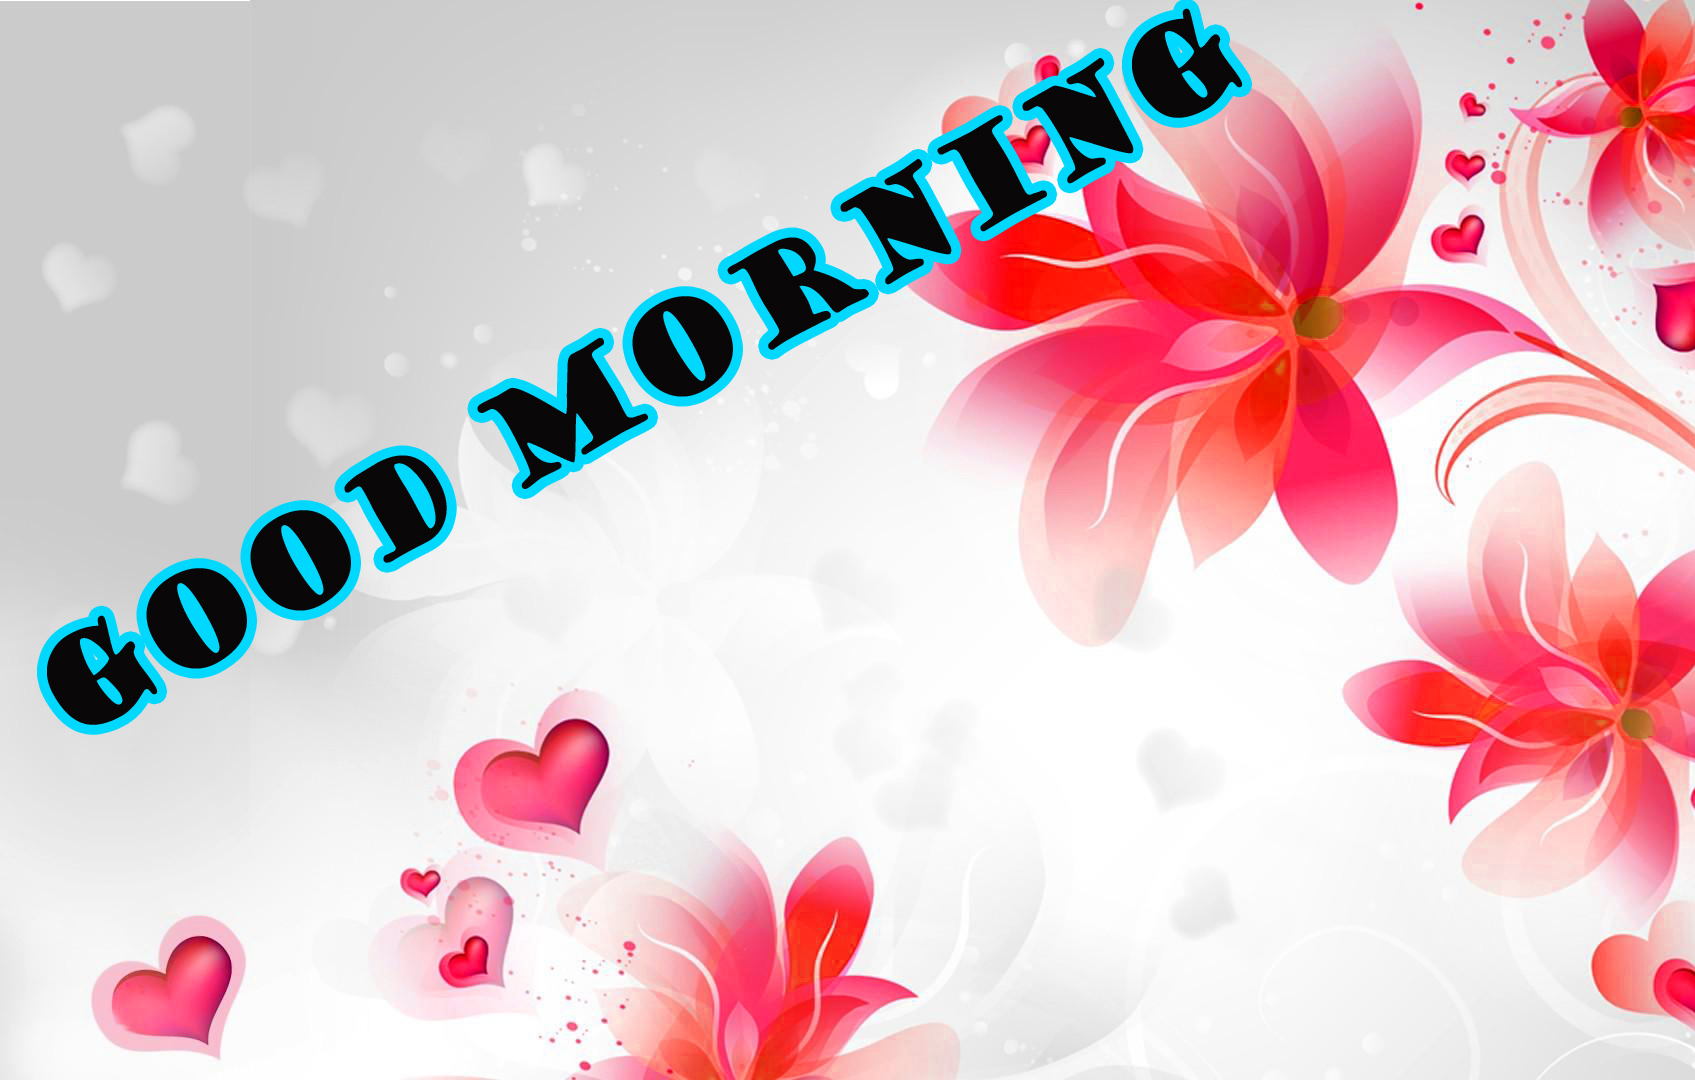 Good Morning Flowers Wallpaper Photo Images HD